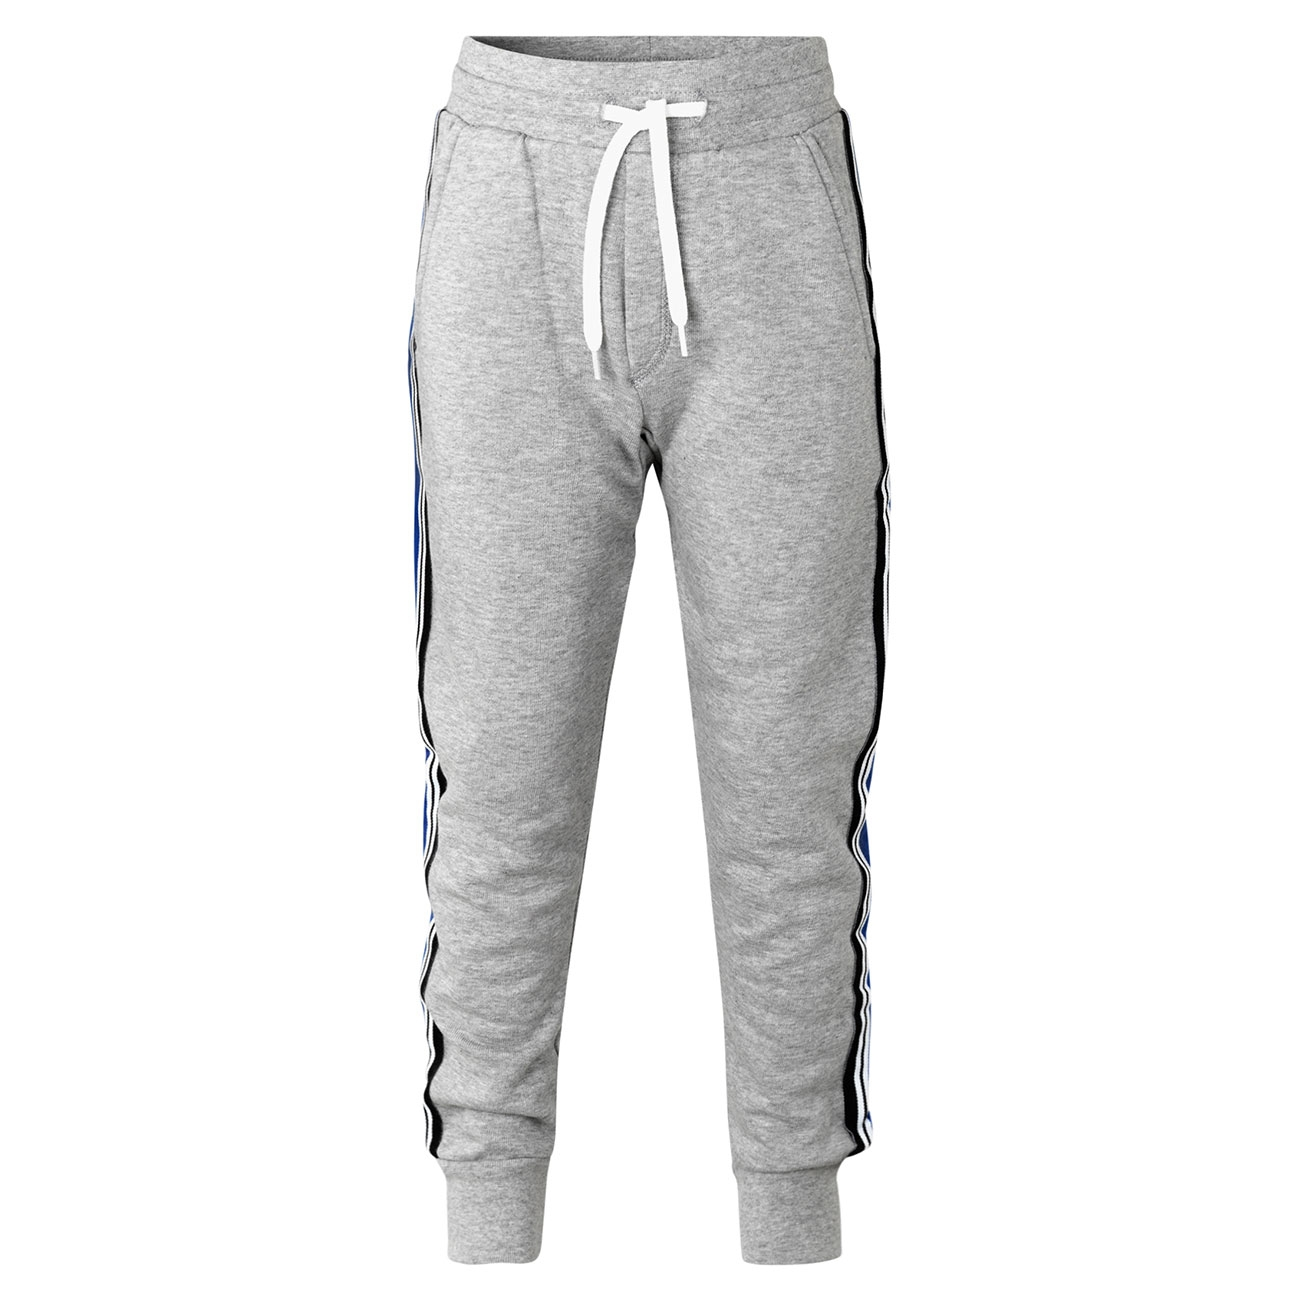 mads-noergaard-organic-sweat-pants-bukser-sweatpants-porino-grey-melange-41050-014-1